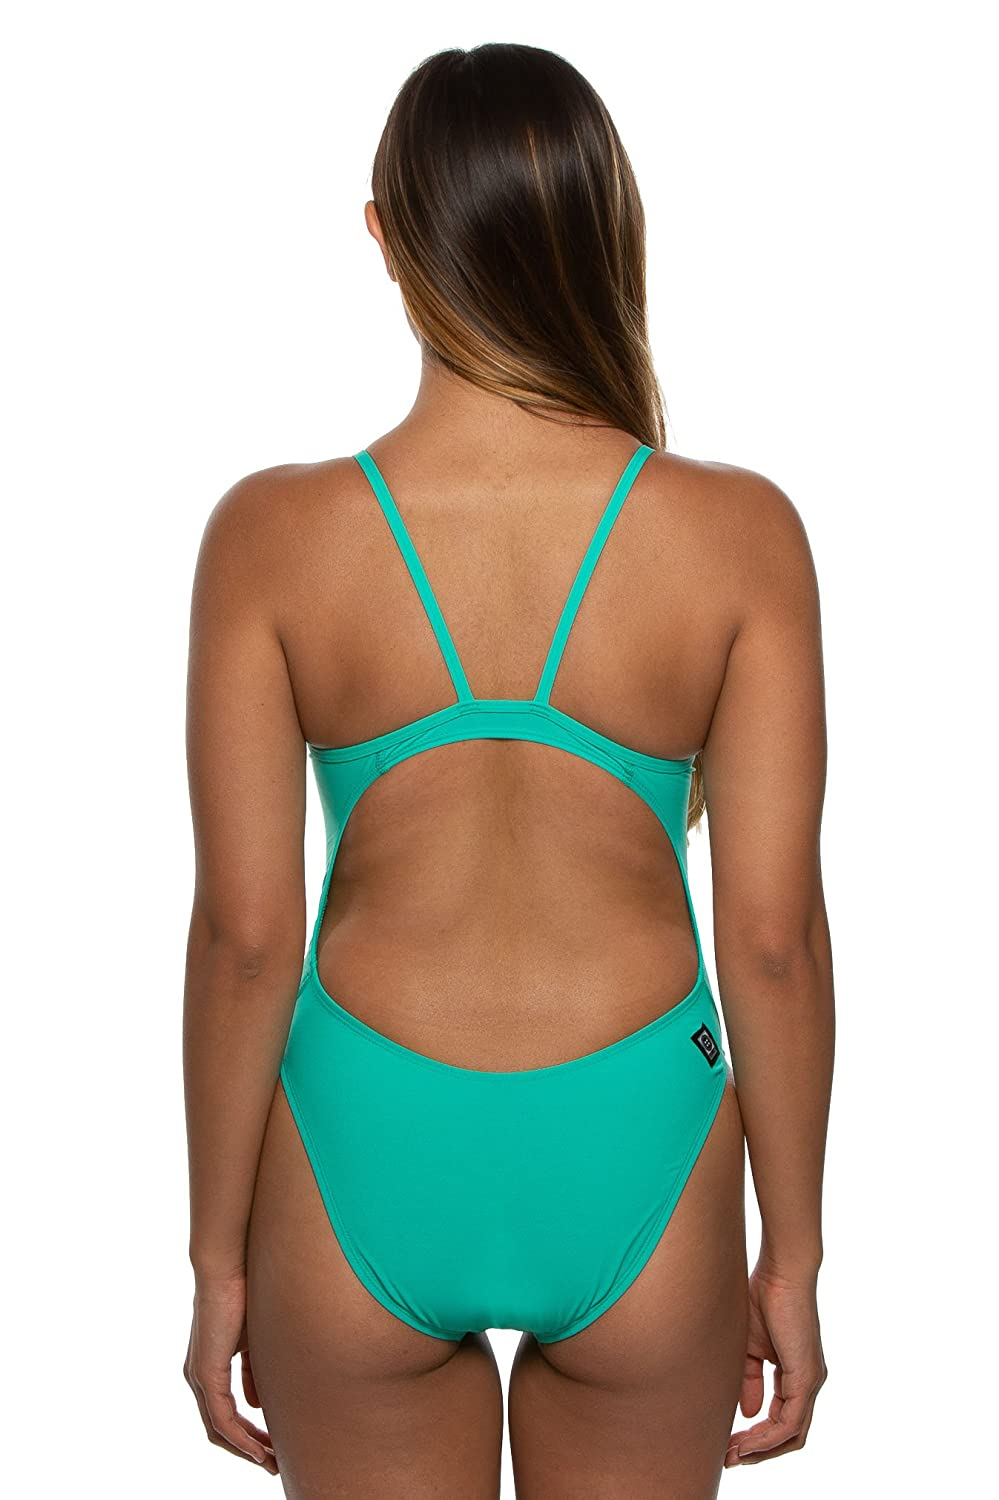 a8807c7f0eab4 JOLYN Womens Fixed-Back Chevy One-Piece Swimsuit Seafoam 810016303725  Sports & Outdoors Sports & Outdoor Clothing